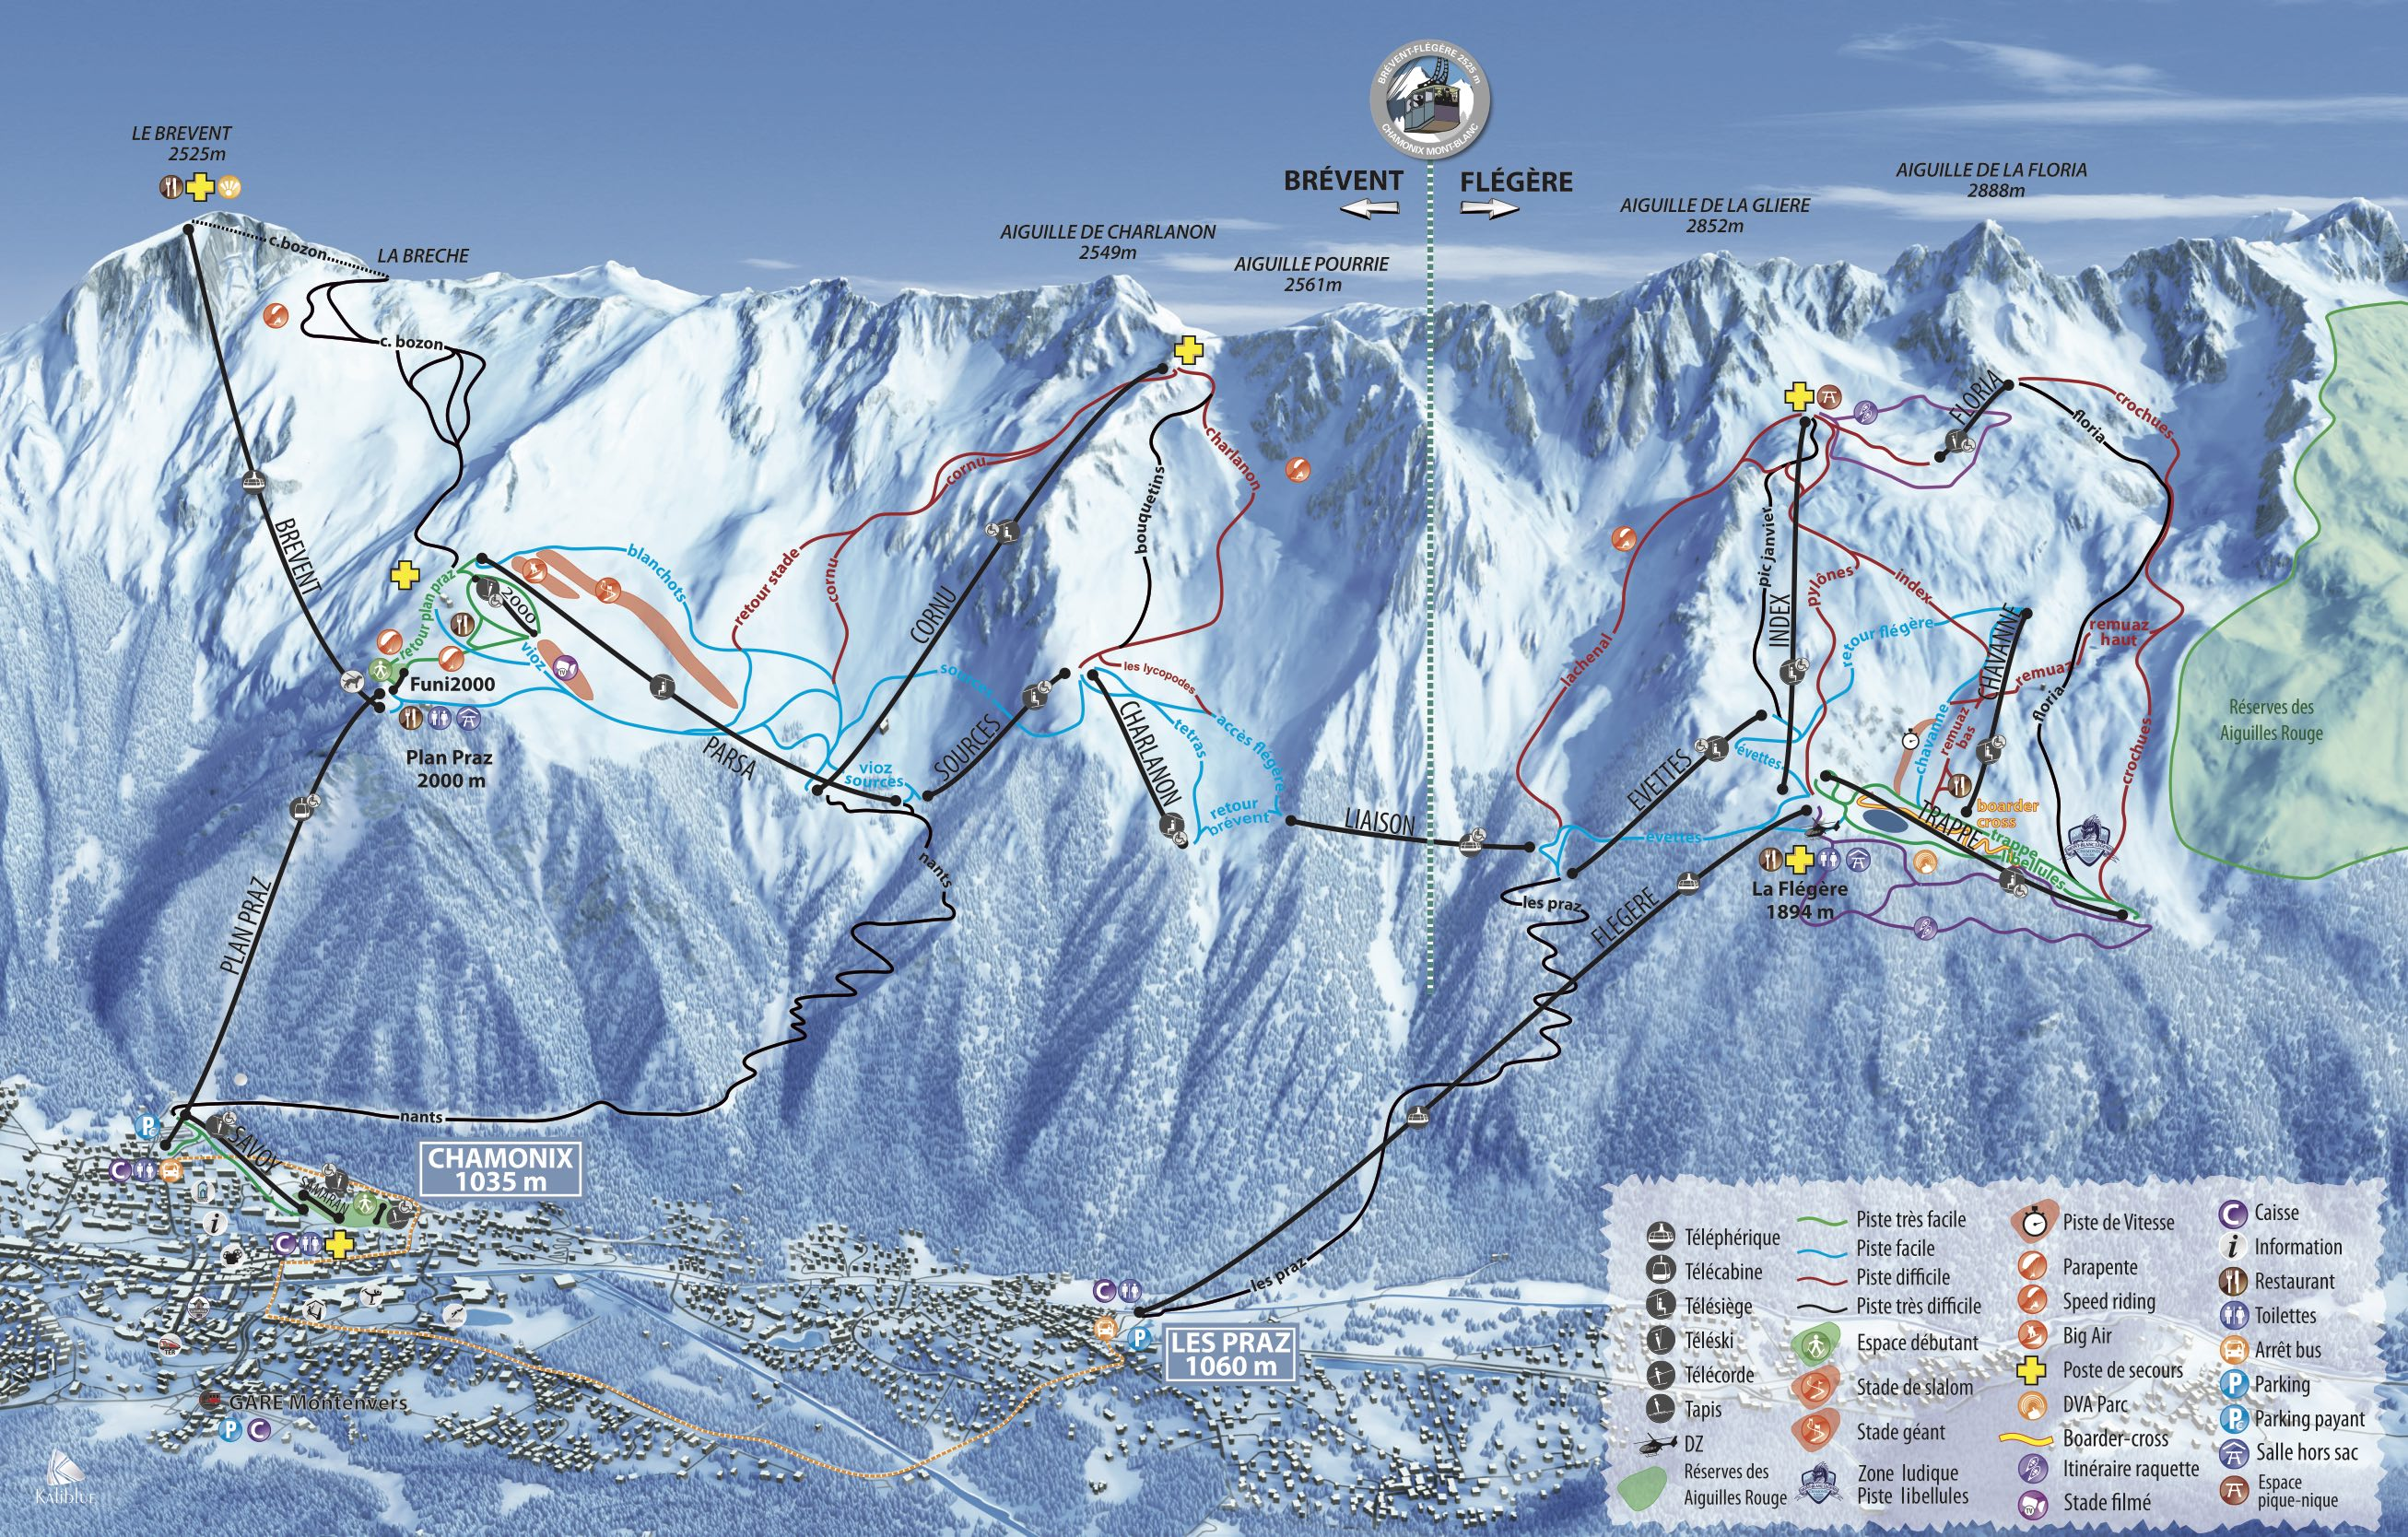 Chamonix Ski Map, luxury chalet chamonix exclusive